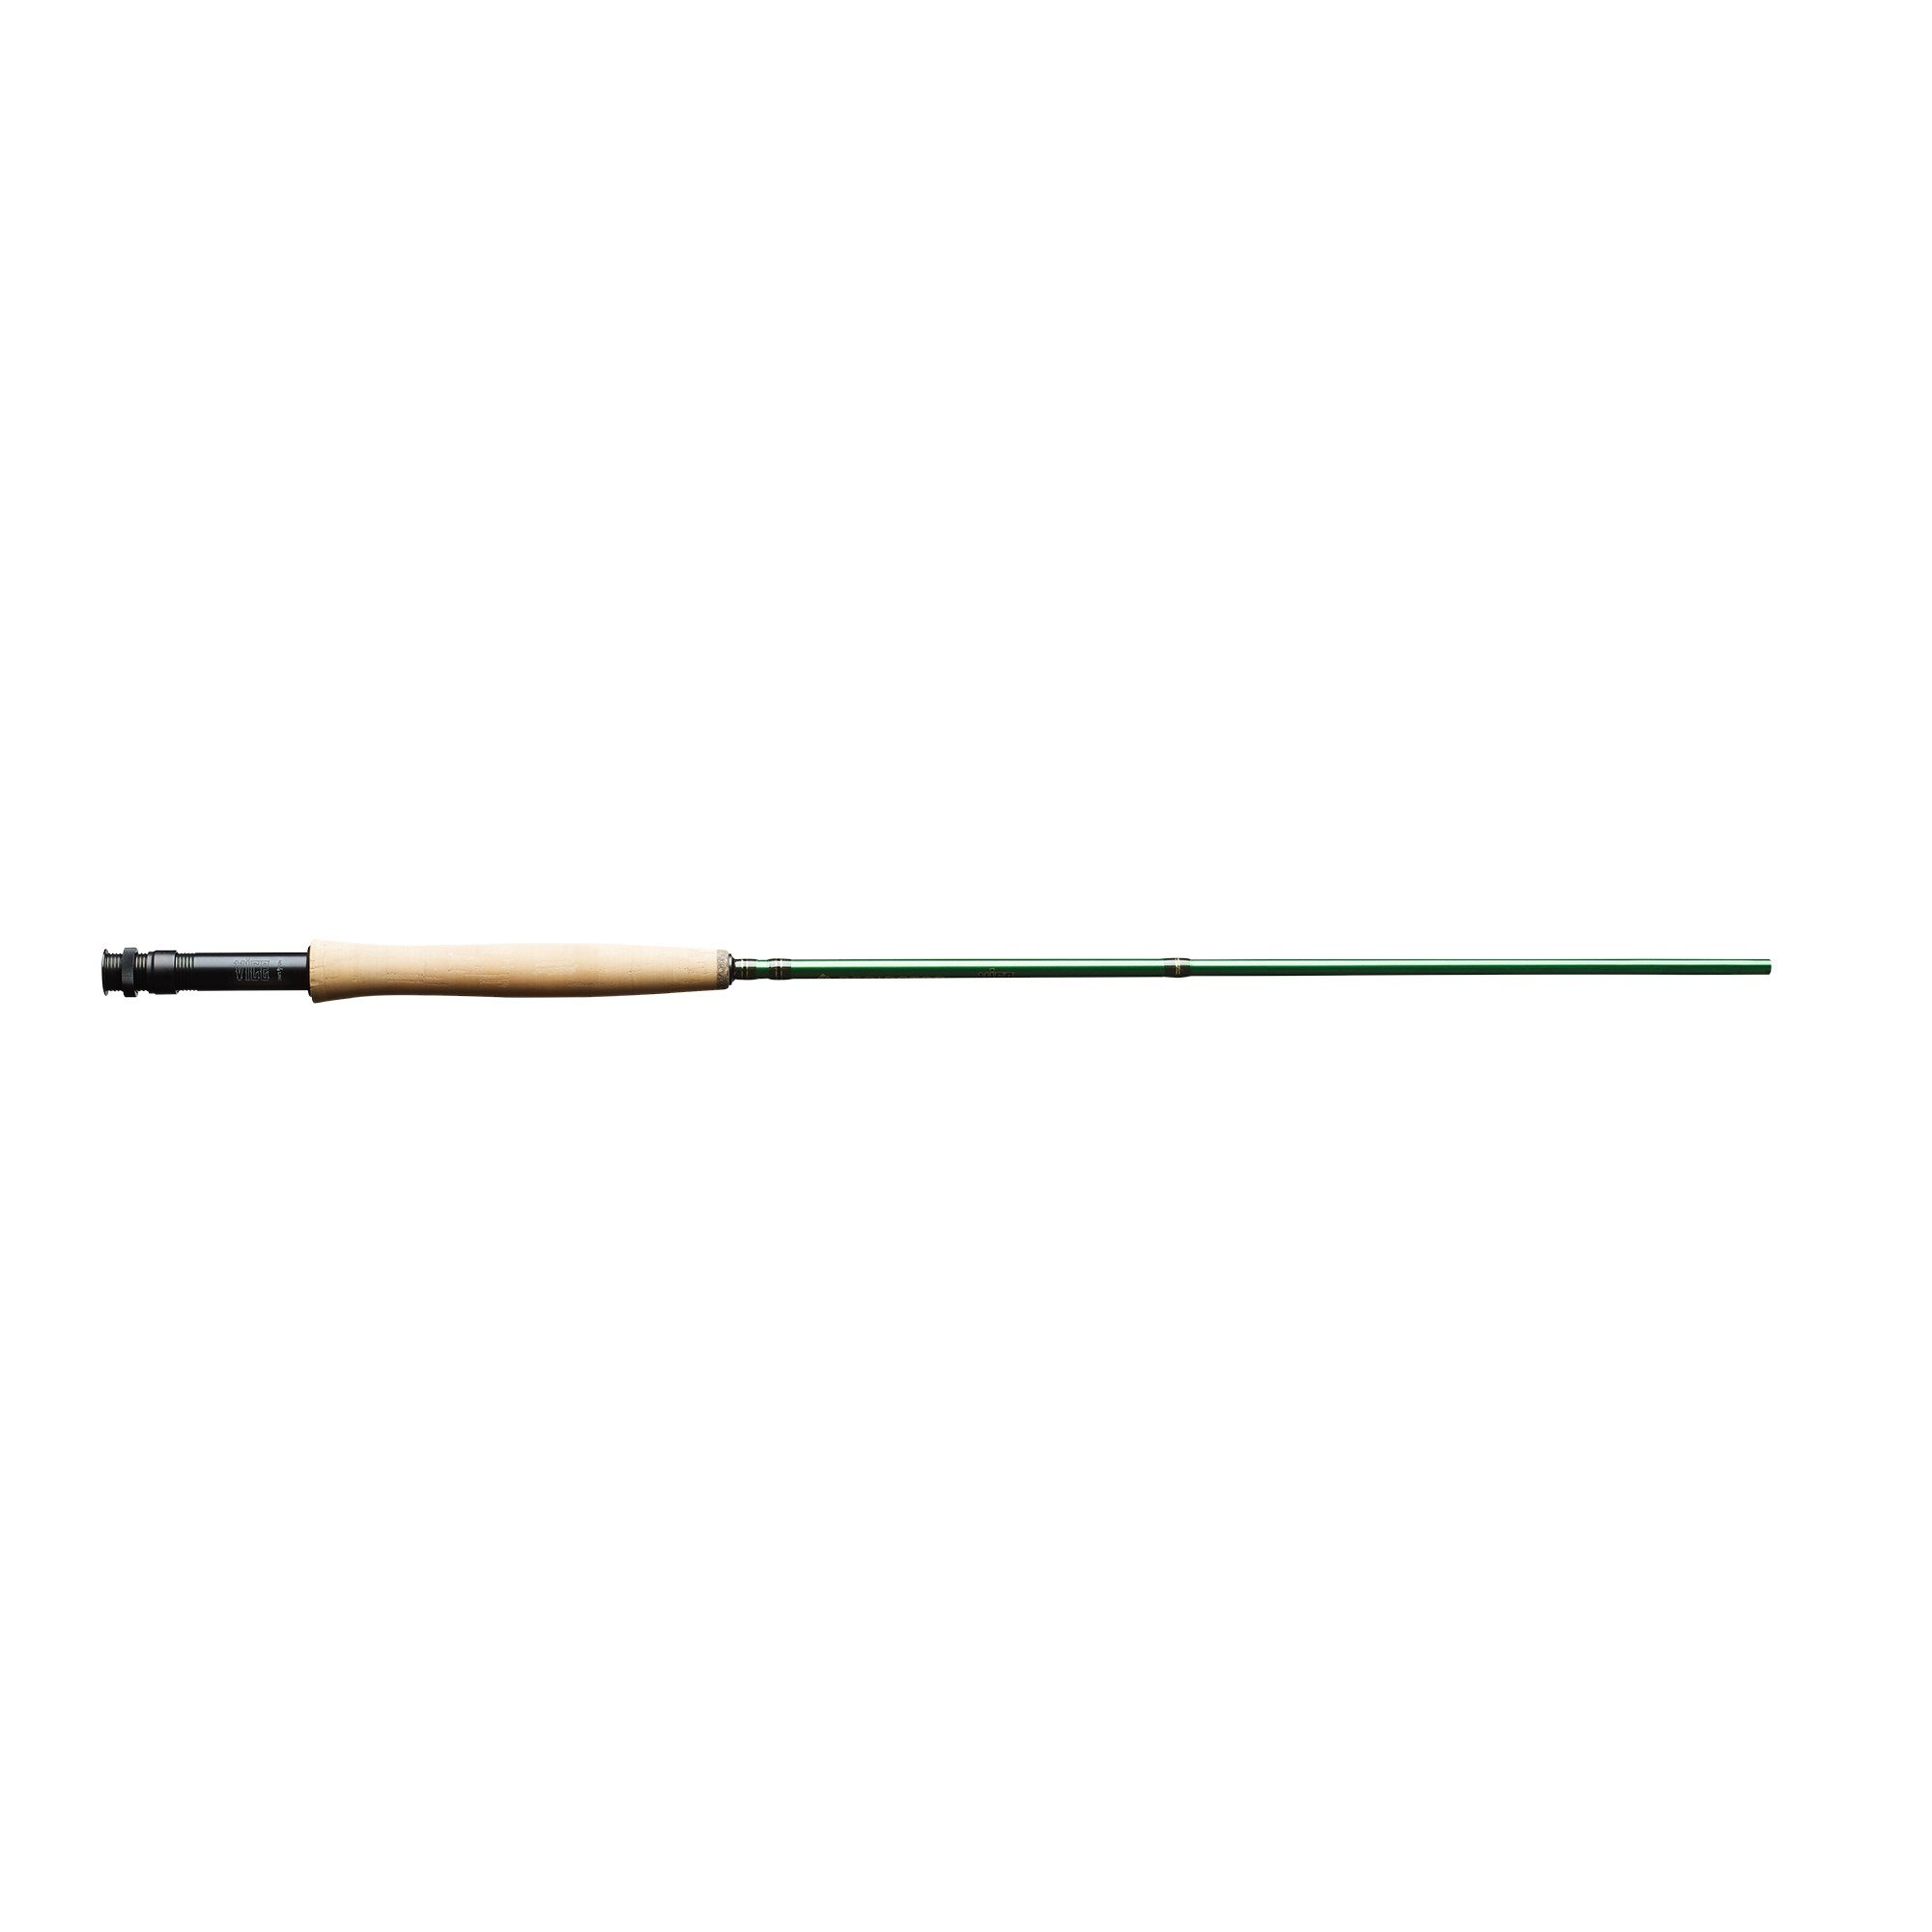 Redington Fly Fishing Rod 7100-4 Vice Rod with Tube 7WT 10' (Piece 4) by Redington